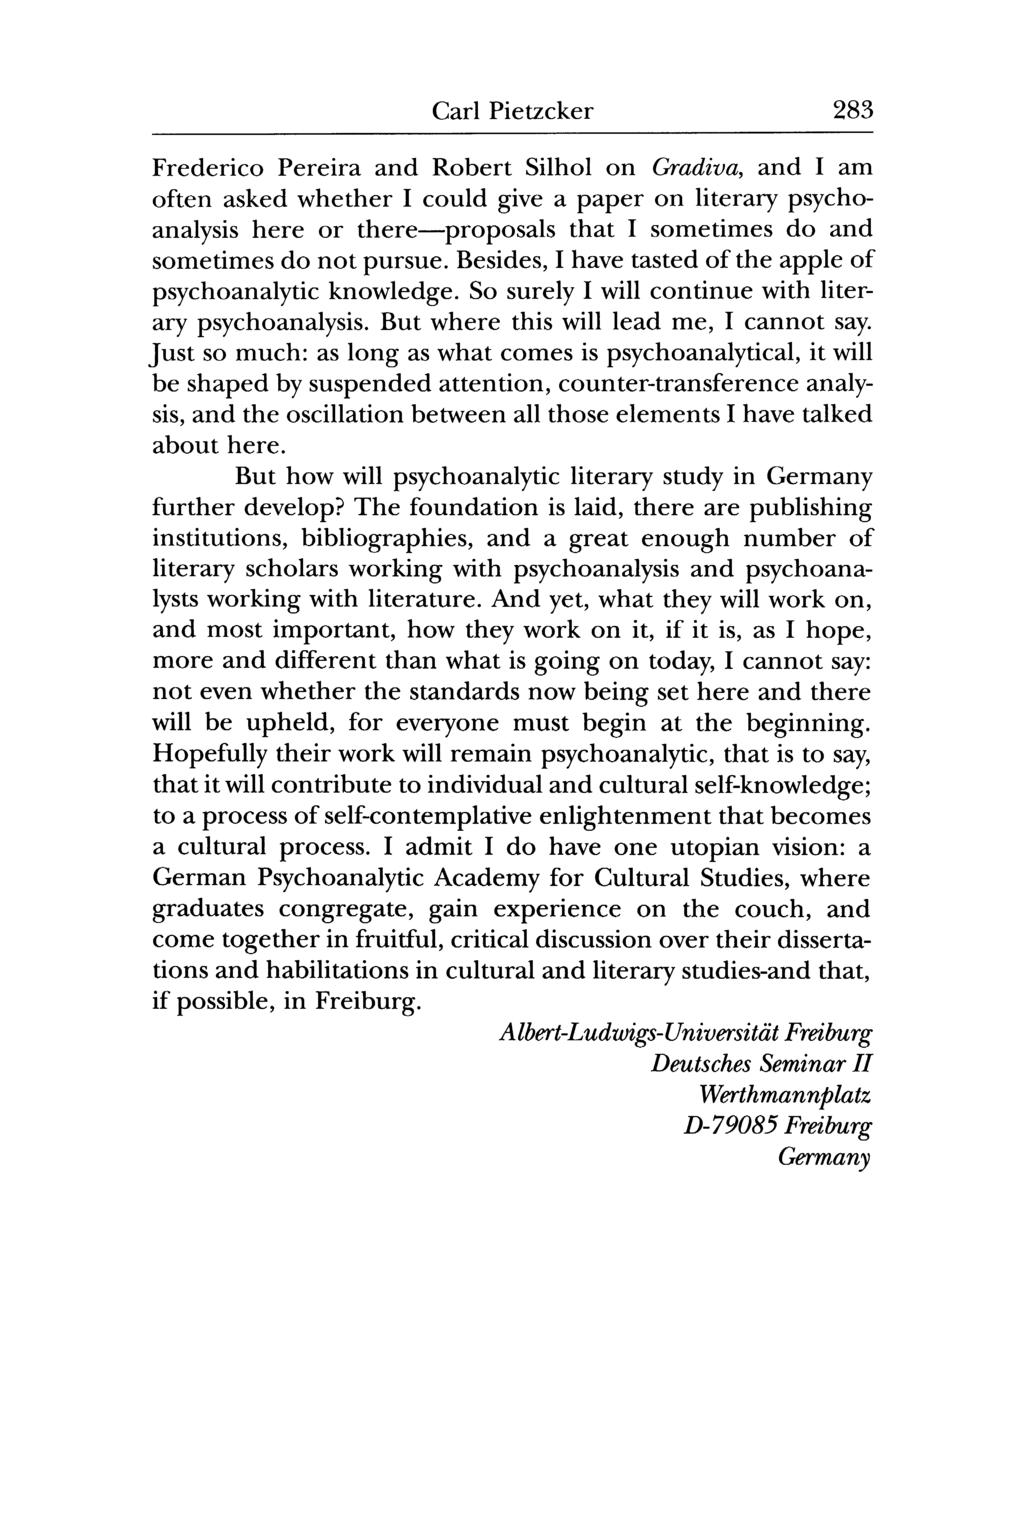 Carl Pietzcker 283 Frederico Pereira and Robert Silhol on Gradiva, and I am often asked whether I could give a paper on literary psychoanalysis here or there proposals that I sometimes do and